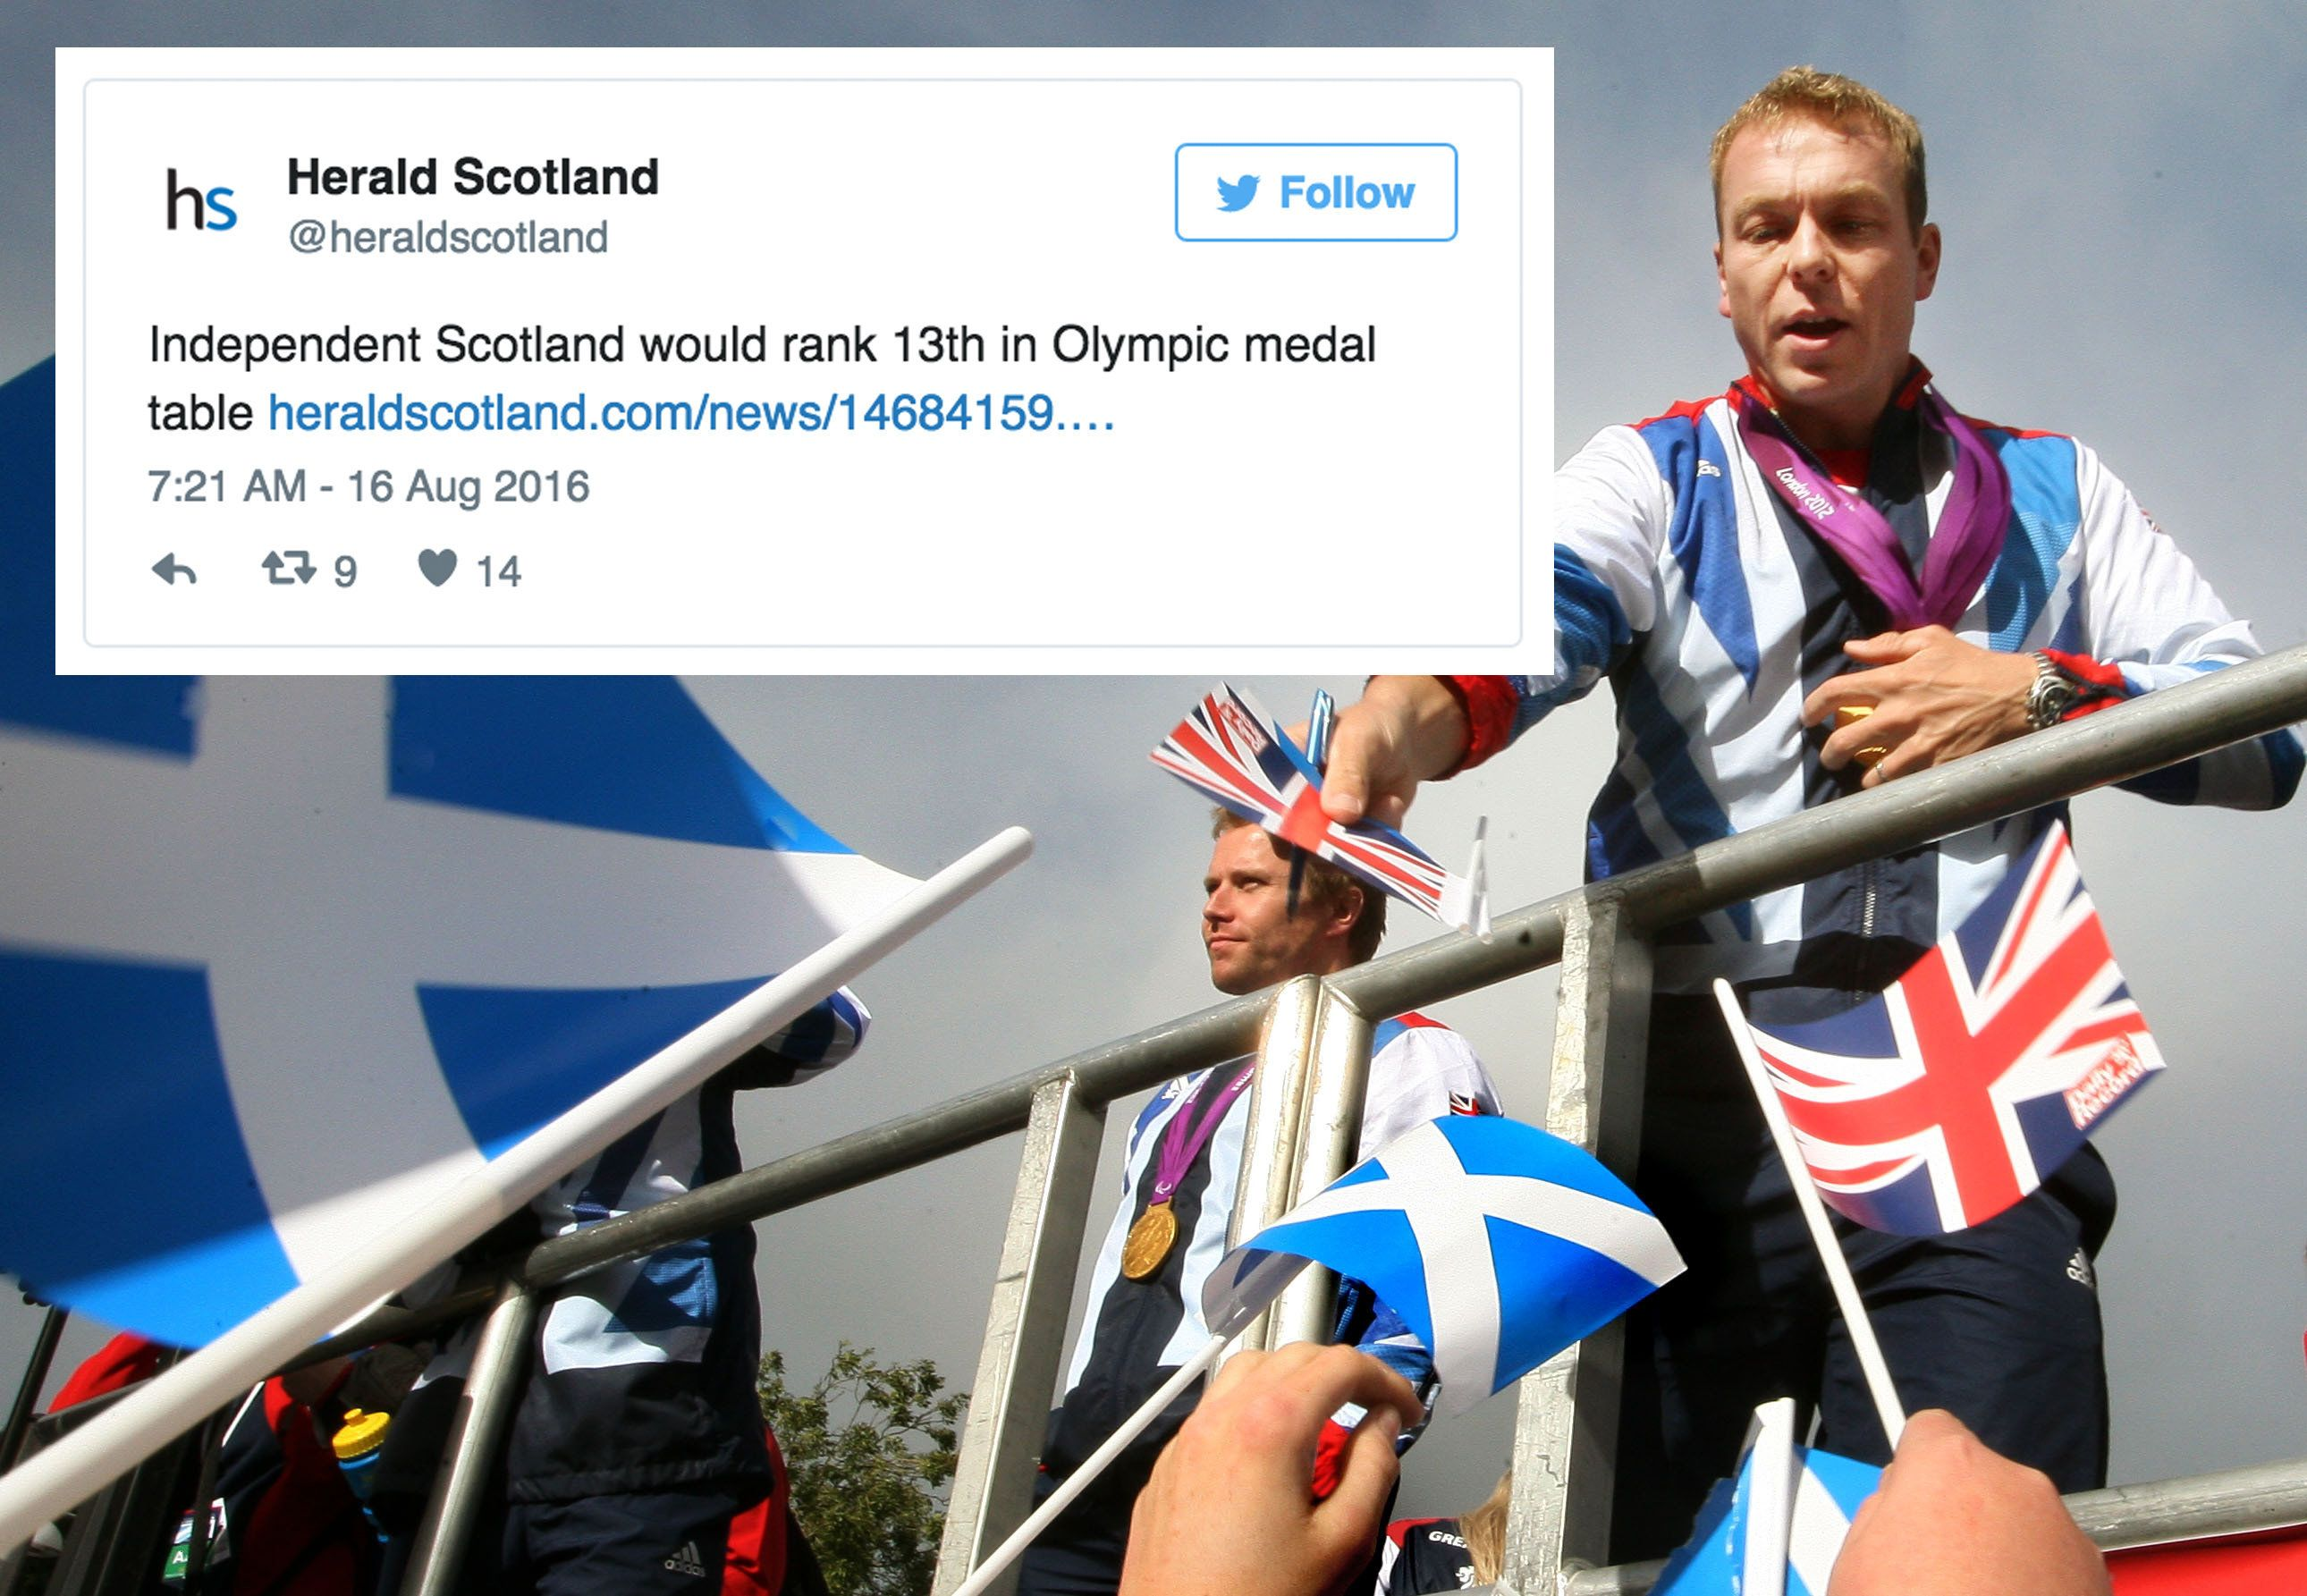 Why Claims An Independent Scotland Would Be 13th In Olympics League Table Are